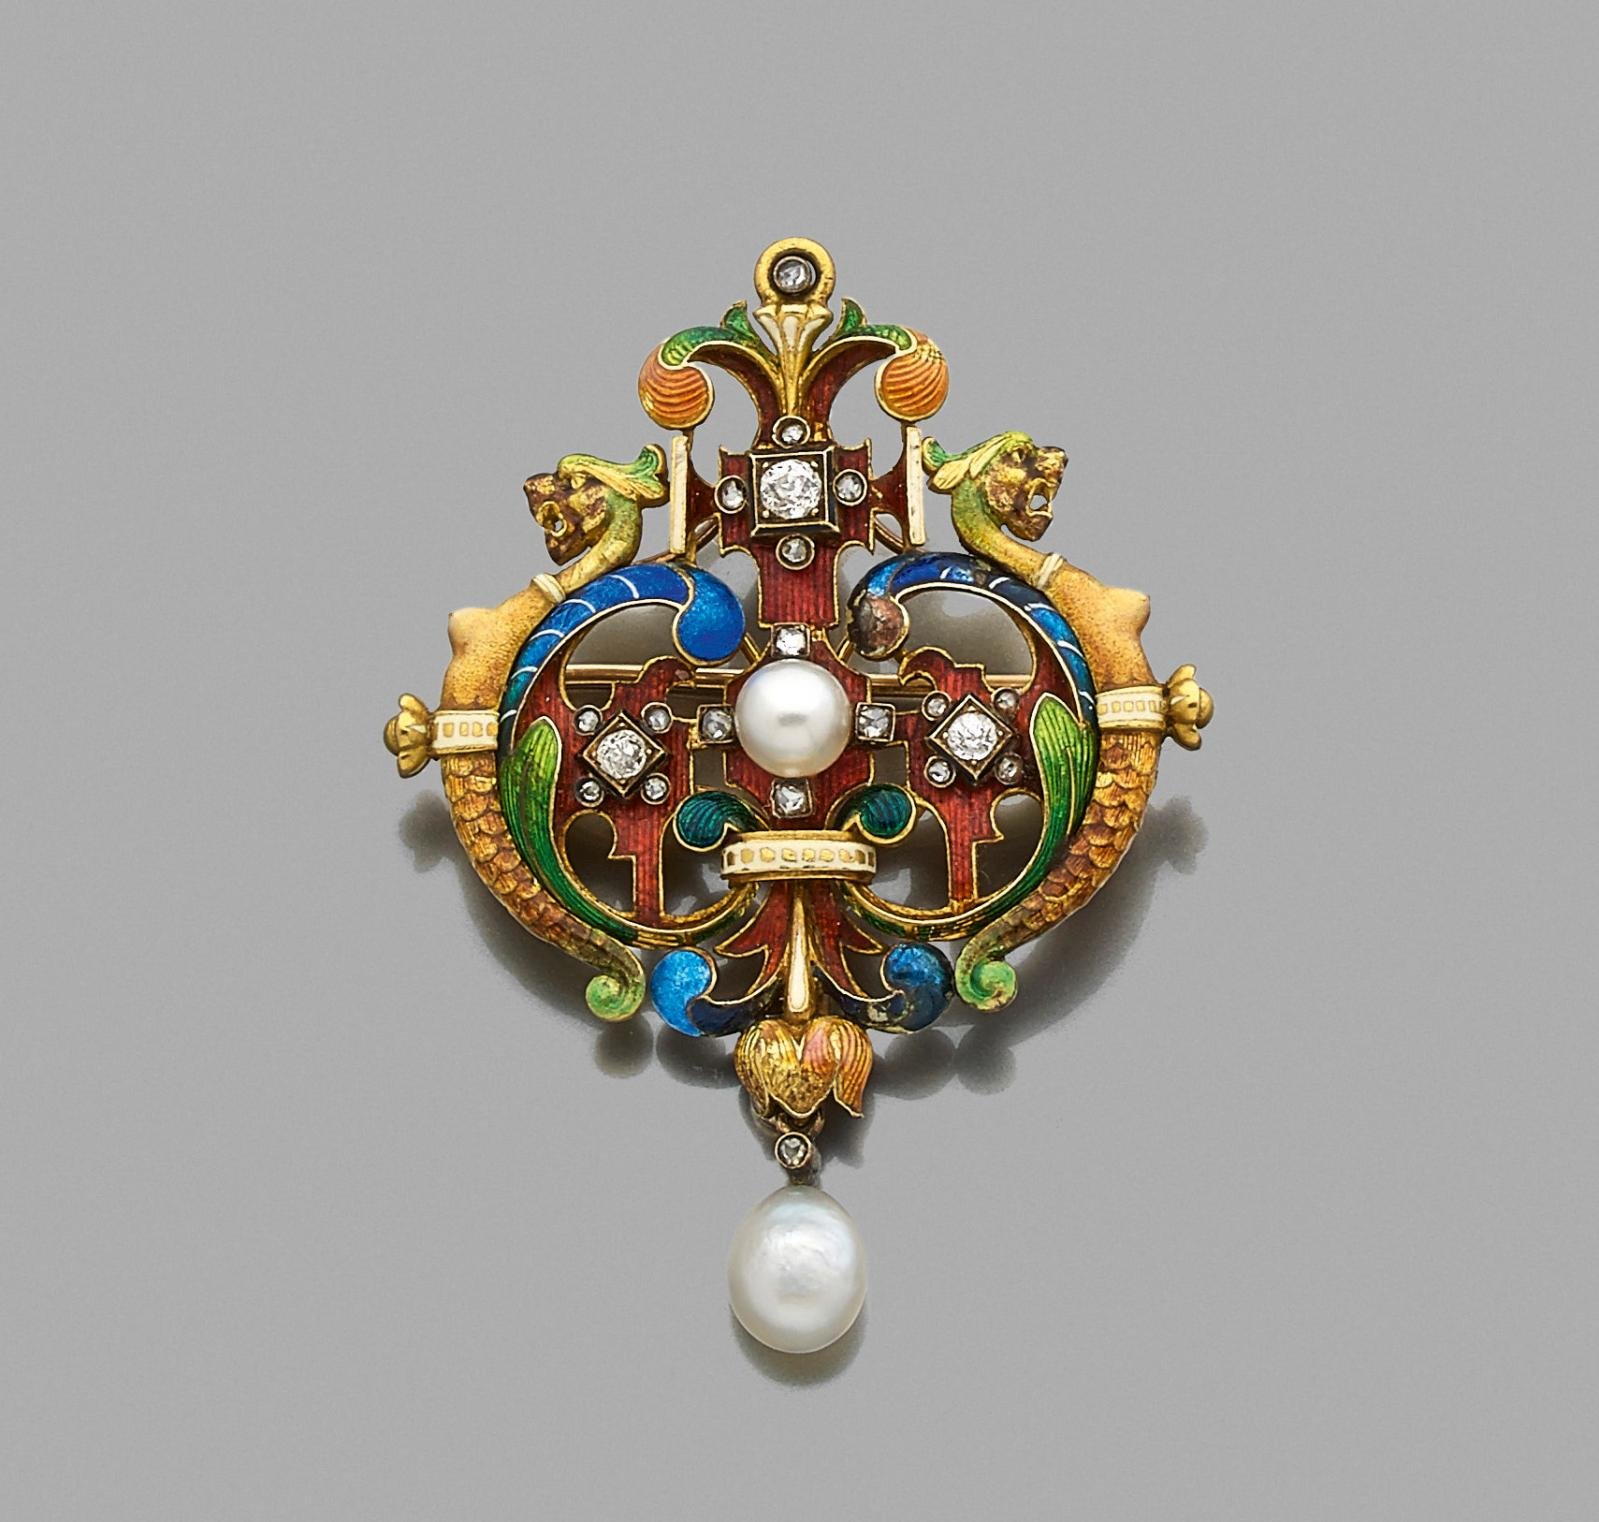 €17,213Lucien Falize, pendant in 18ct yellow gold and multicolored enamel, with fine pearls and rose-cut diamonds, depicting two curled Cs